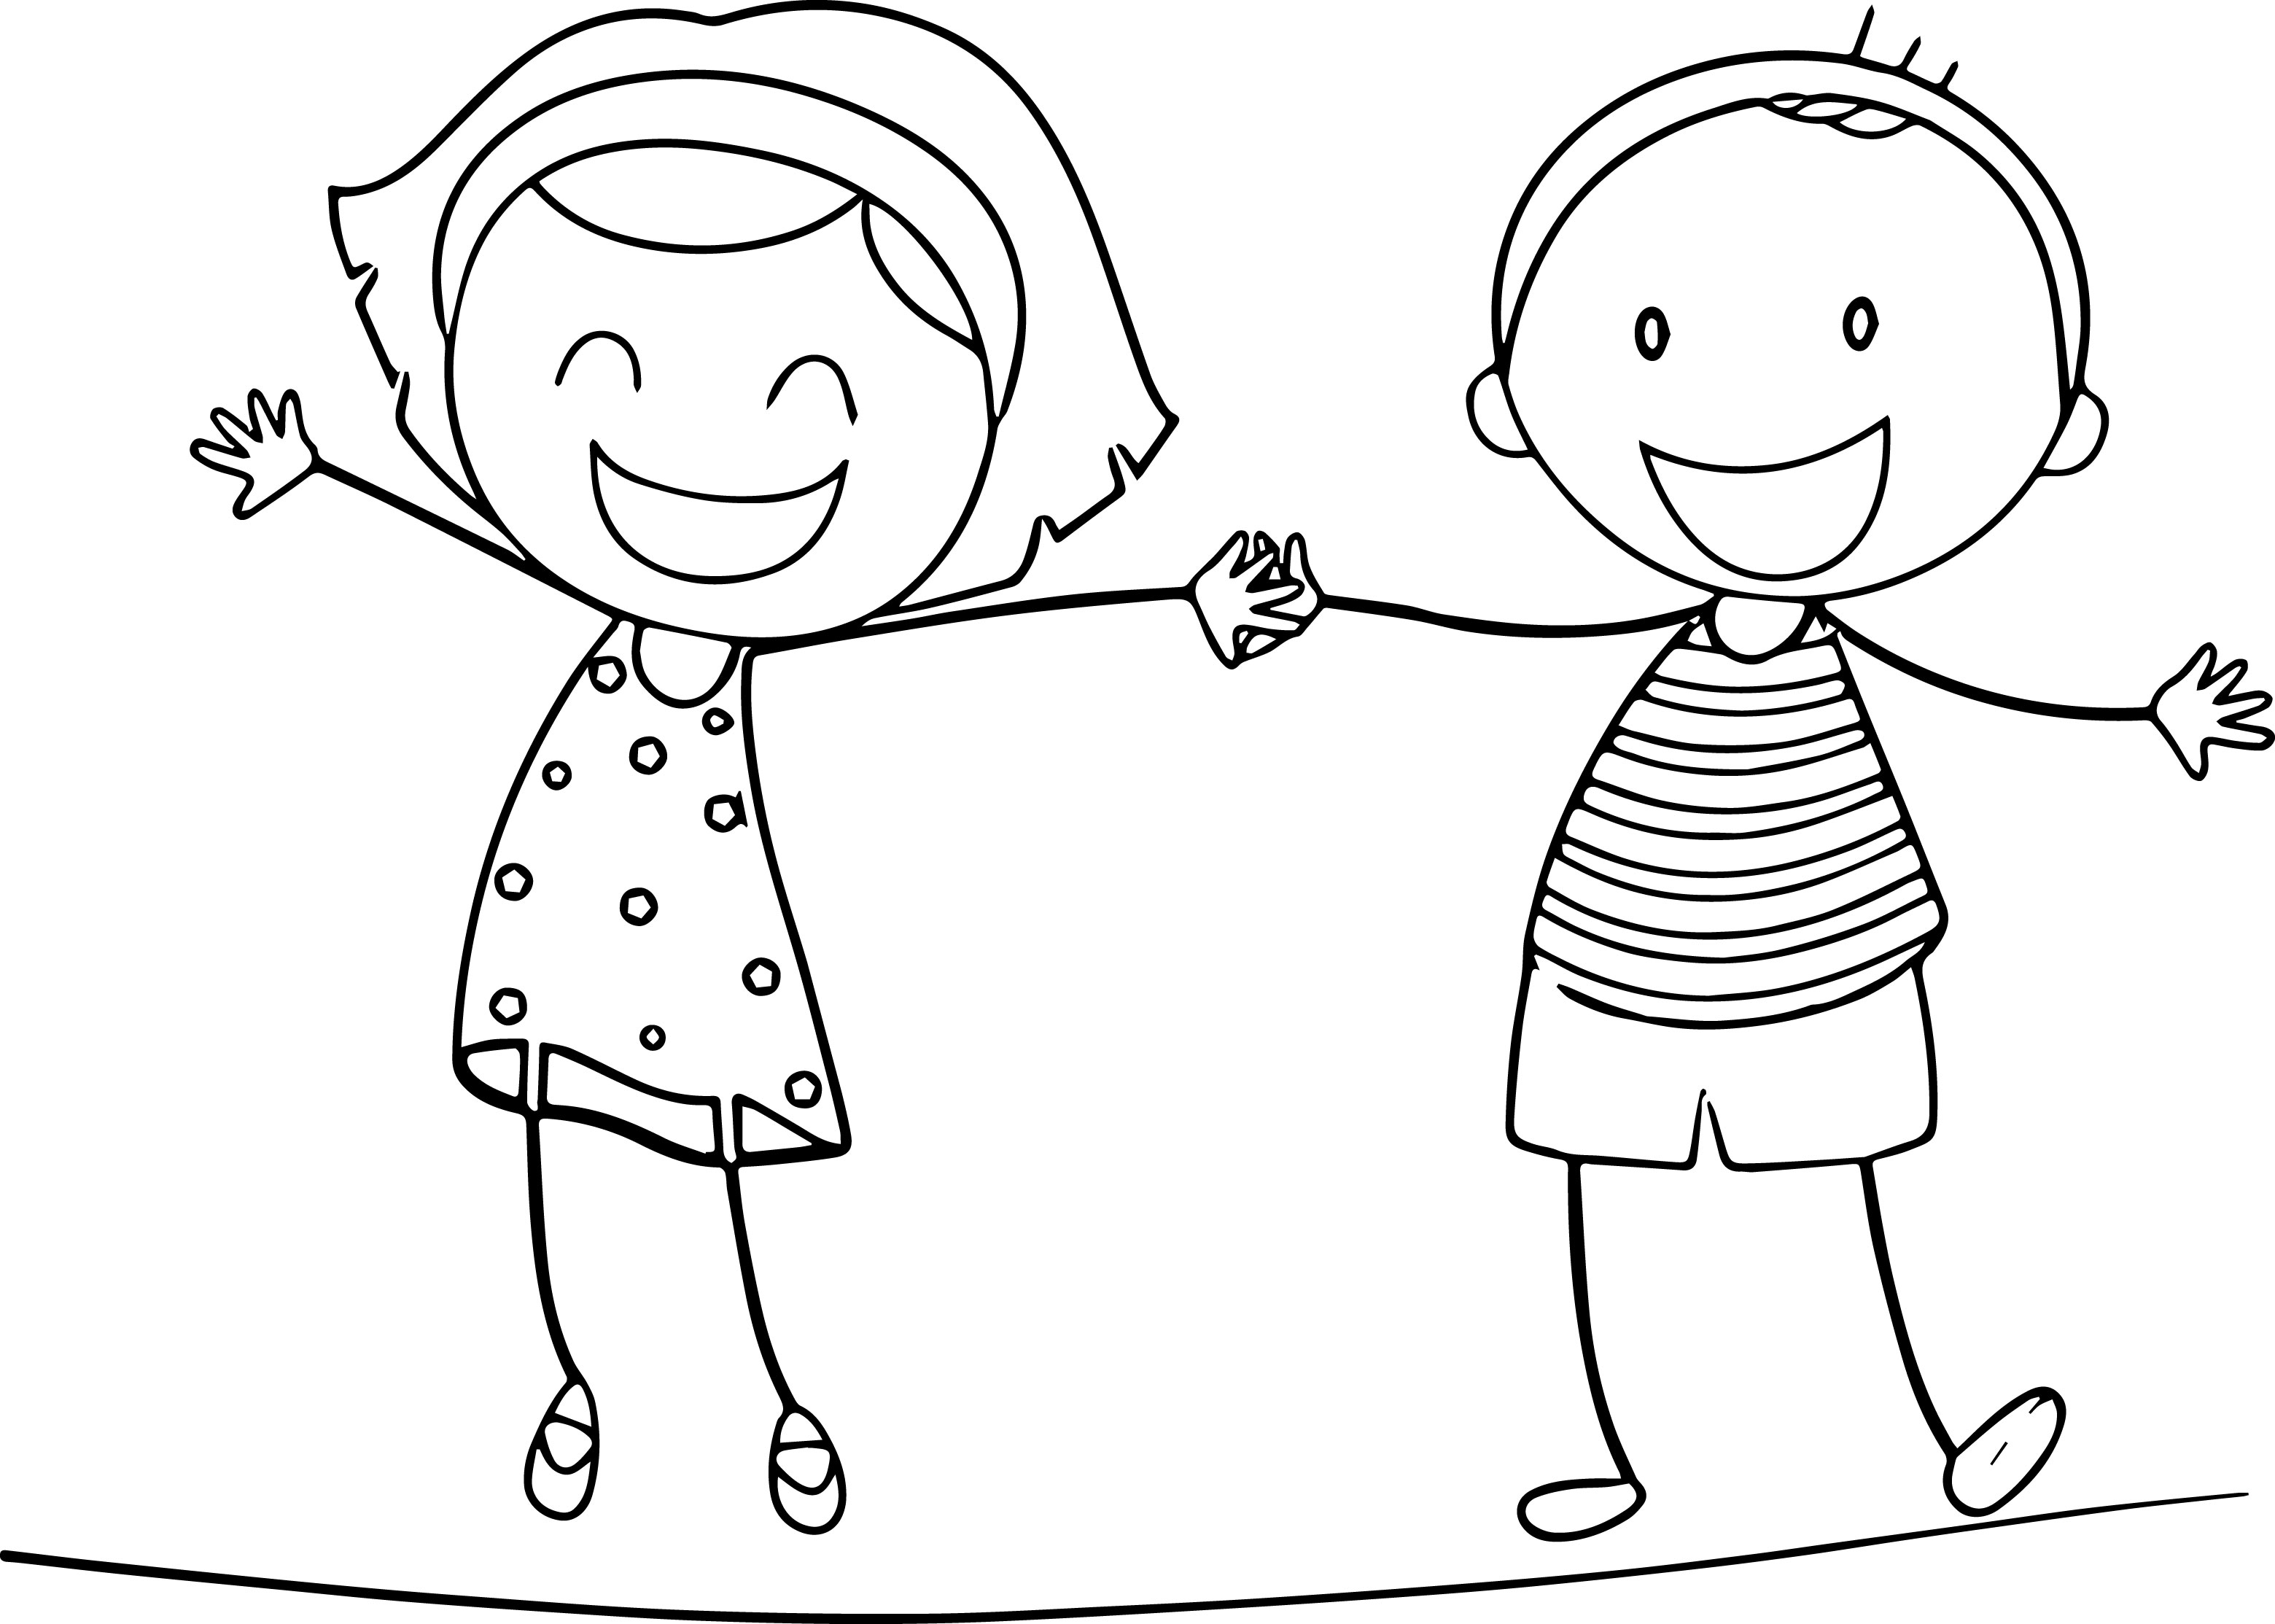 3120x2227 Coloring Pages For Boys And Girls Colouring Funny Pict